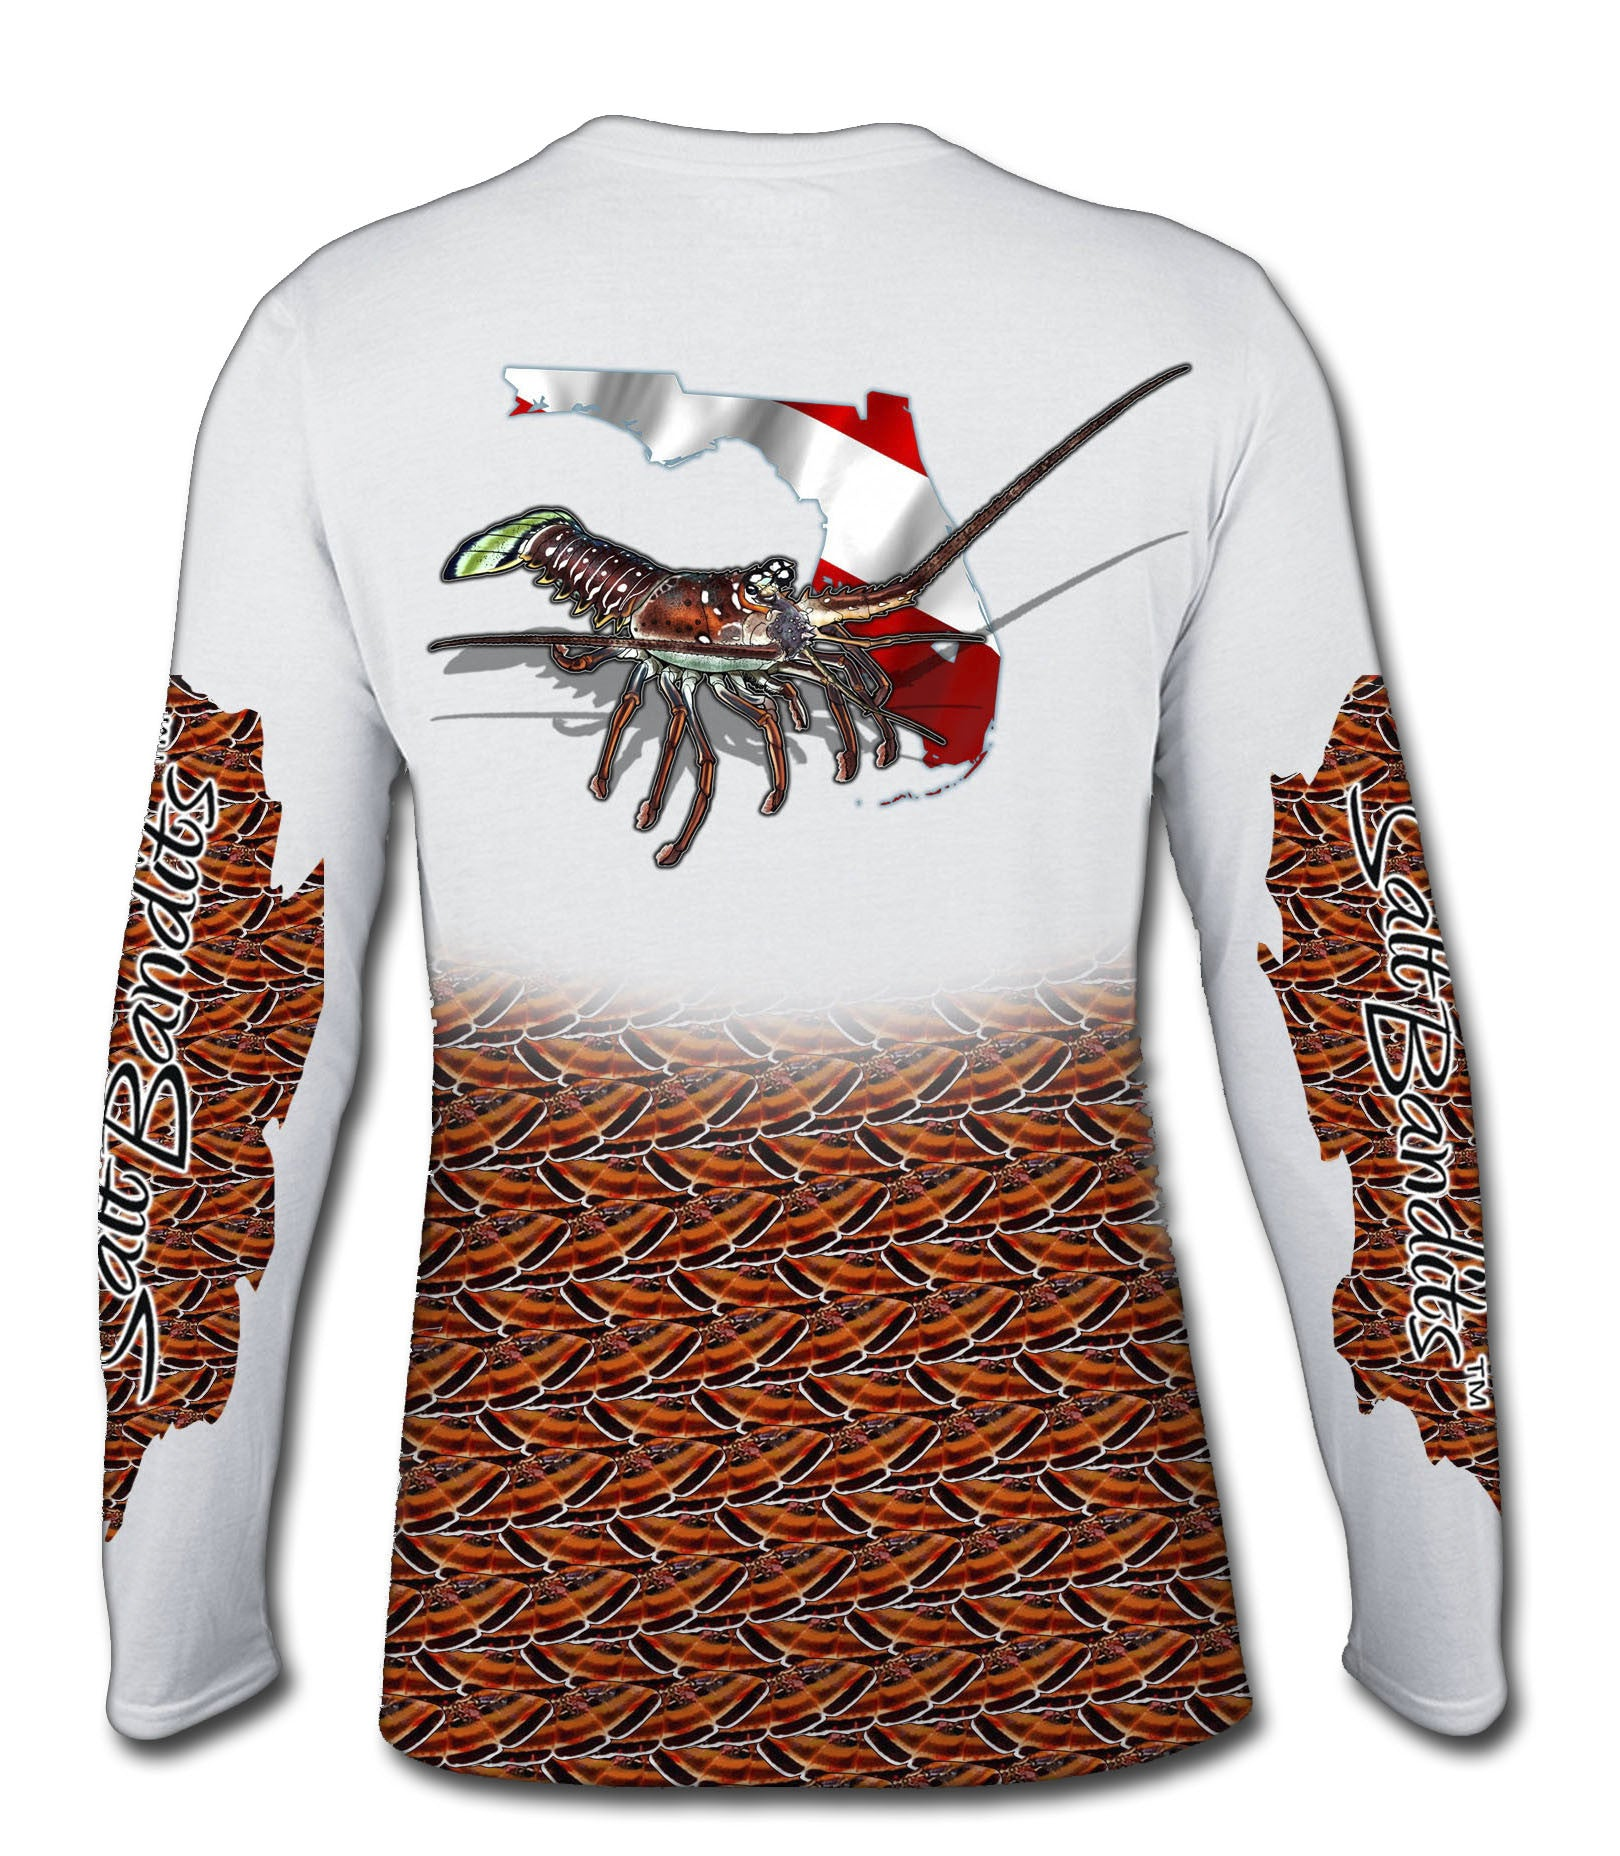 SaltBandits™ Spiny Lobster Performance Long Sleeve T-shirt